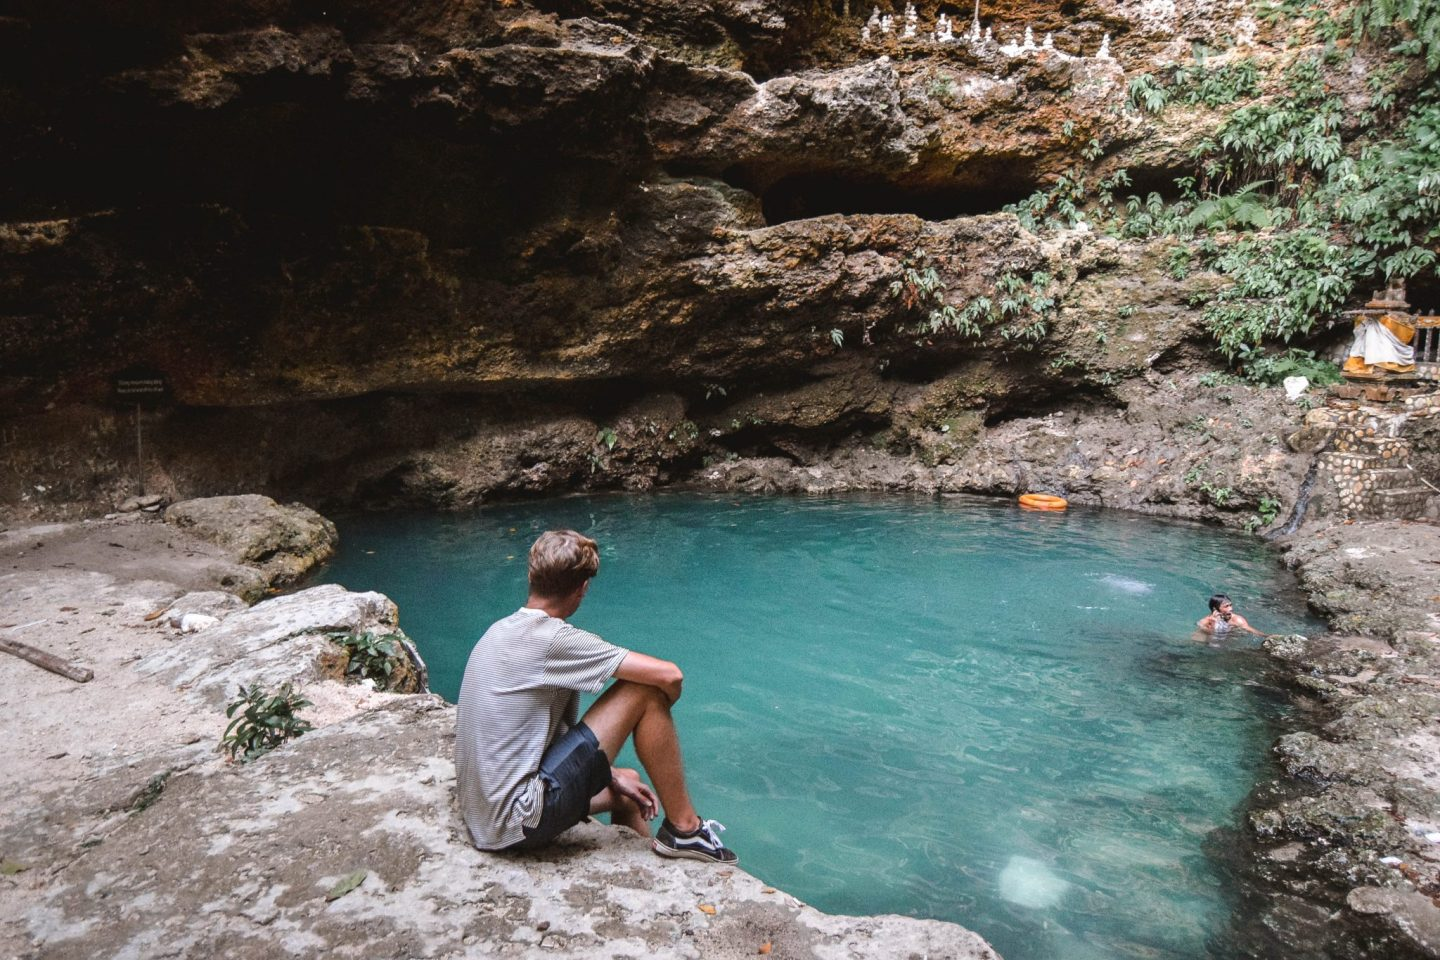 Wanderers & Warriors - Charlie & Lauren UK Travel Couple - Tembeling Natural Pool - Nusa Penida Bali - Tembeling Nusa Penida - Tembeling Natural Pool Nusa Penida - Tembelng Beach And Forest - Things To Do In Nusa Penida - Tembeling Beach Nusa Penida - Nusa Islands